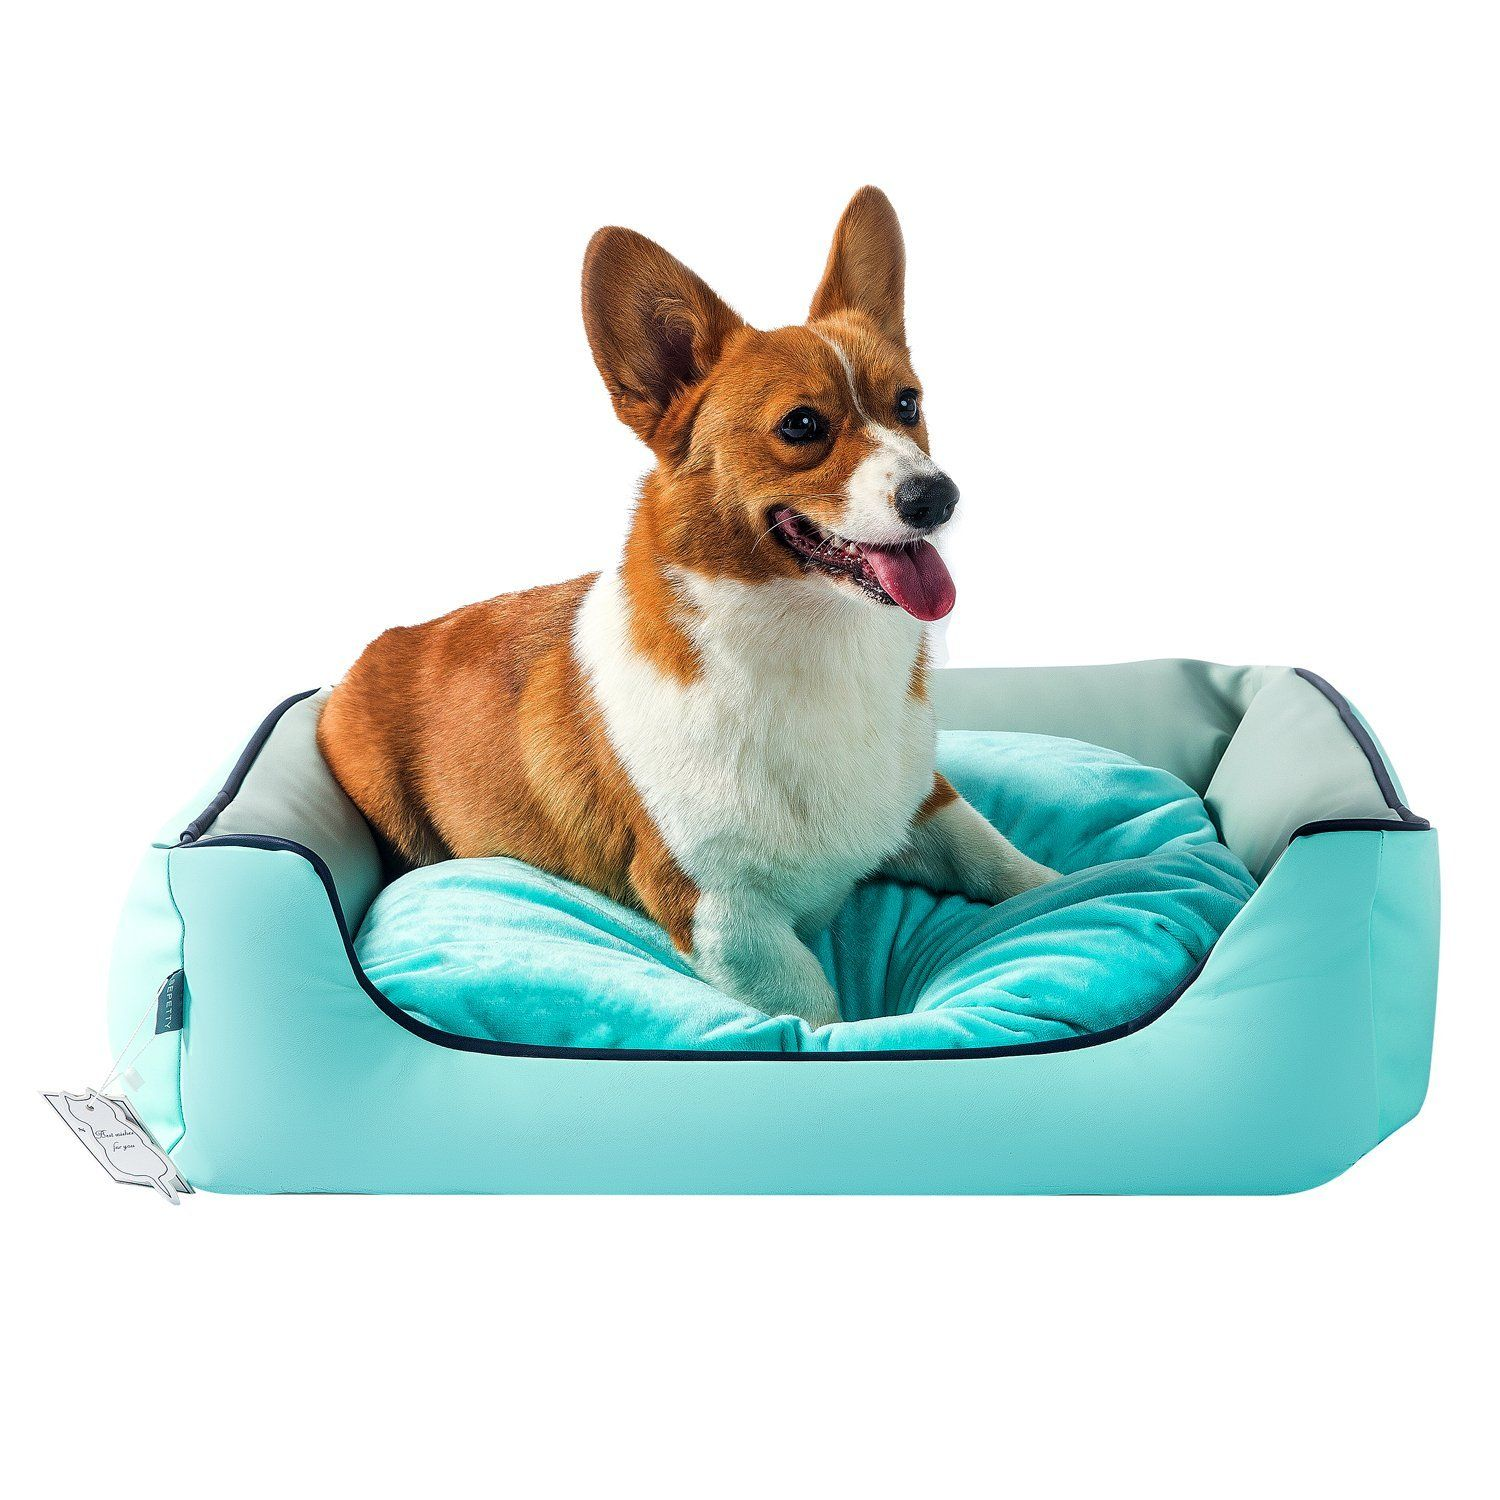 Sepetty Leather Dog Cat Bed Luxurious Dog Bed Removable Easy To Clean And Durable Pet Bed Designed For All Seasons Ortho High Dog Beds Leather Dog Bed Dog Bed